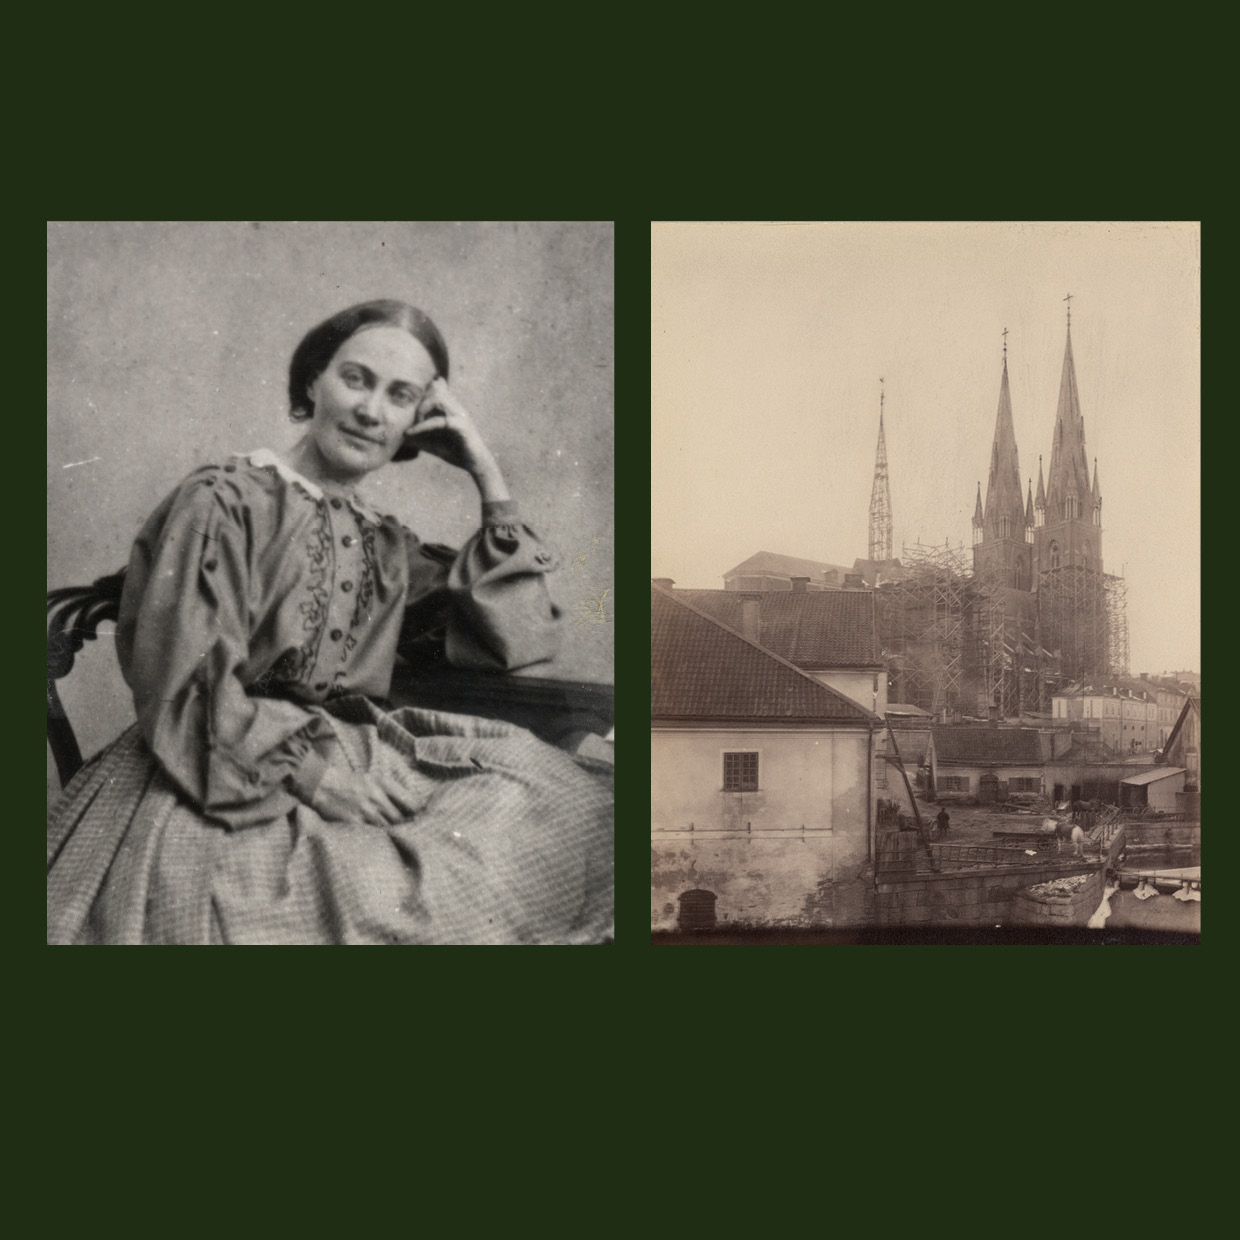 portrait of Emma Schenson on the left and a view of the rebuilt towers of the cathedral on the right